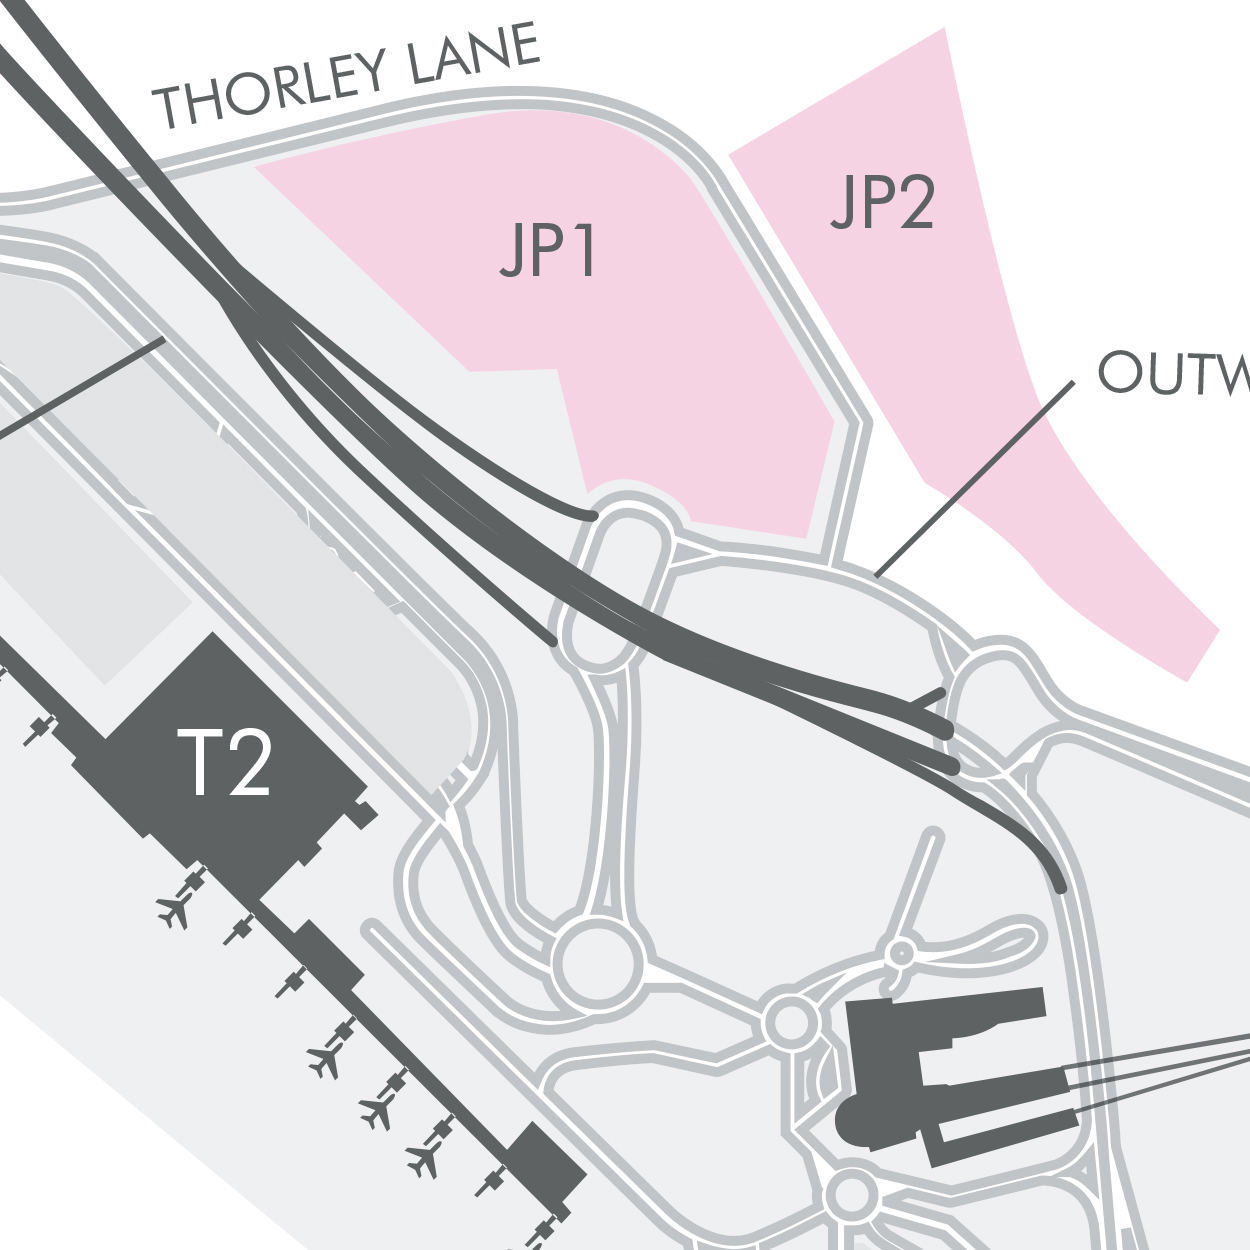 JetParks 2 Car Parking Maps